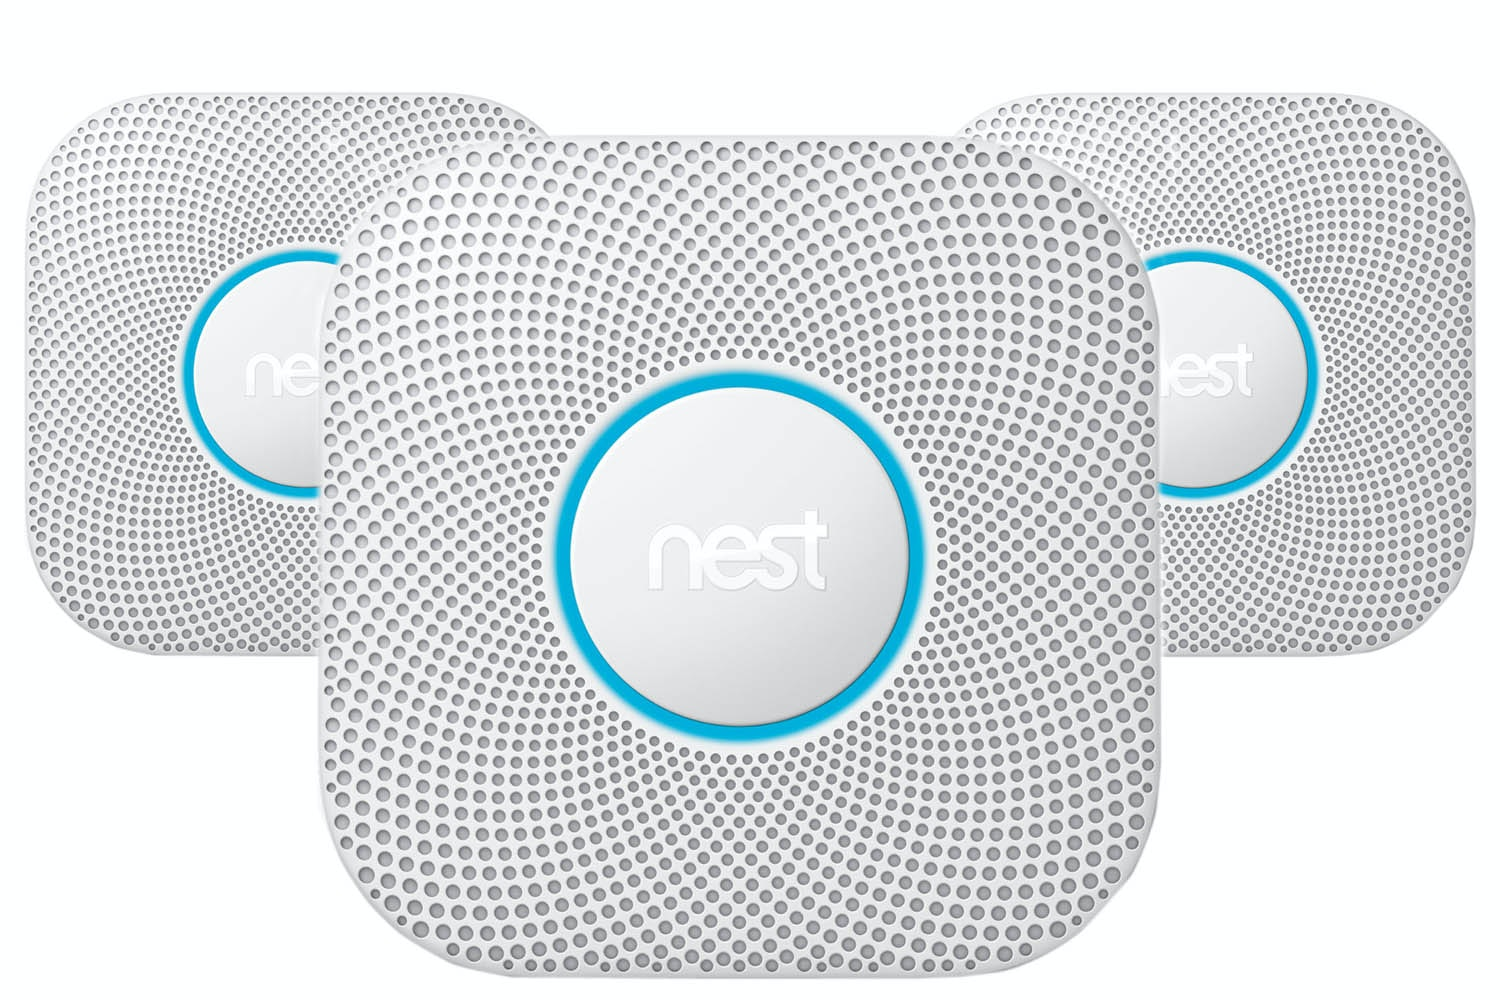 Nest Protect 2 Battery 3 Pack